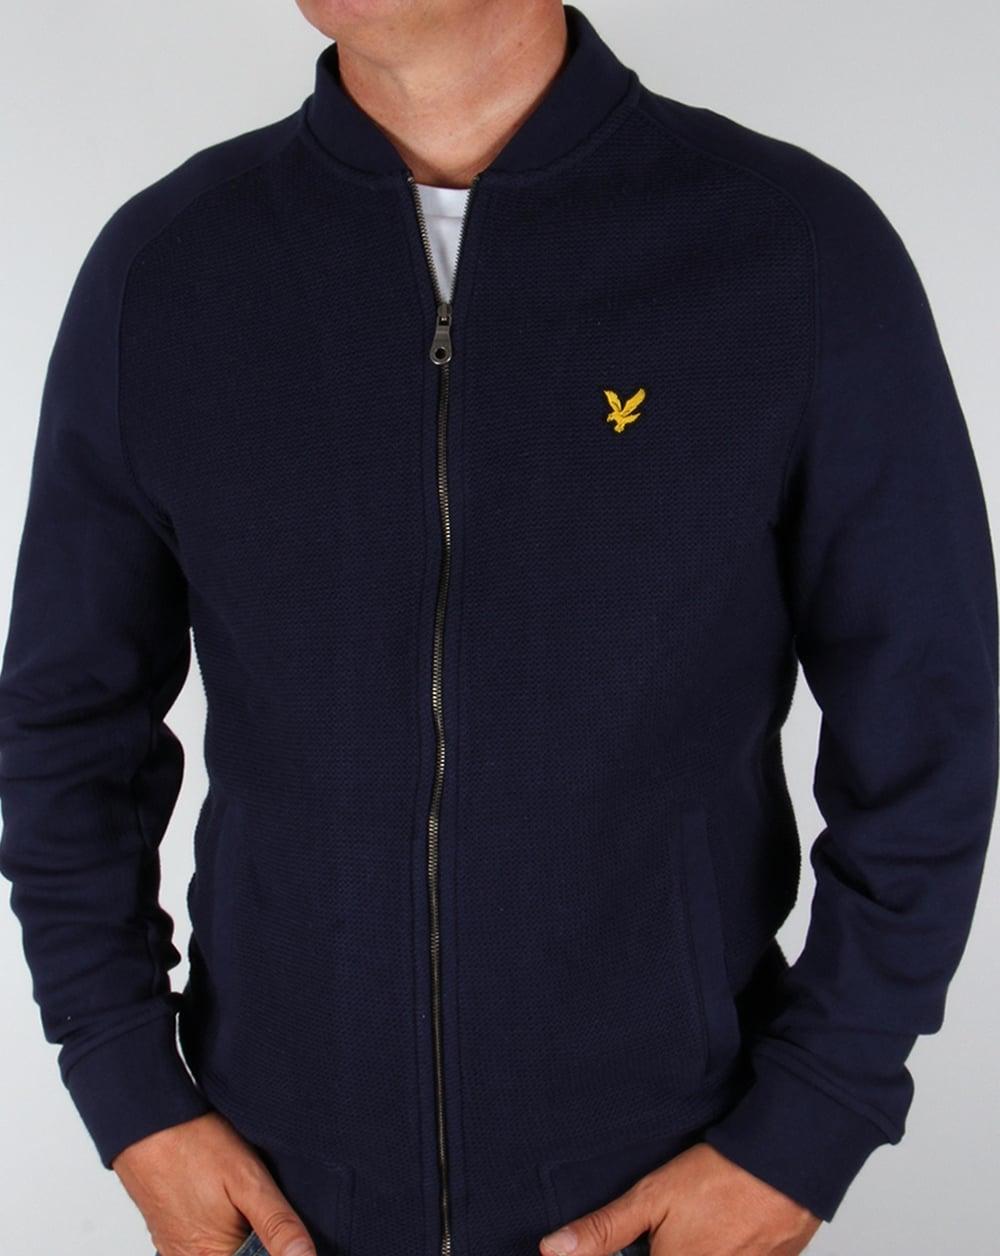 lyle and scott double faced bomber navy track top jacket. Black Bedroom Furniture Sets. Home Design Ideas